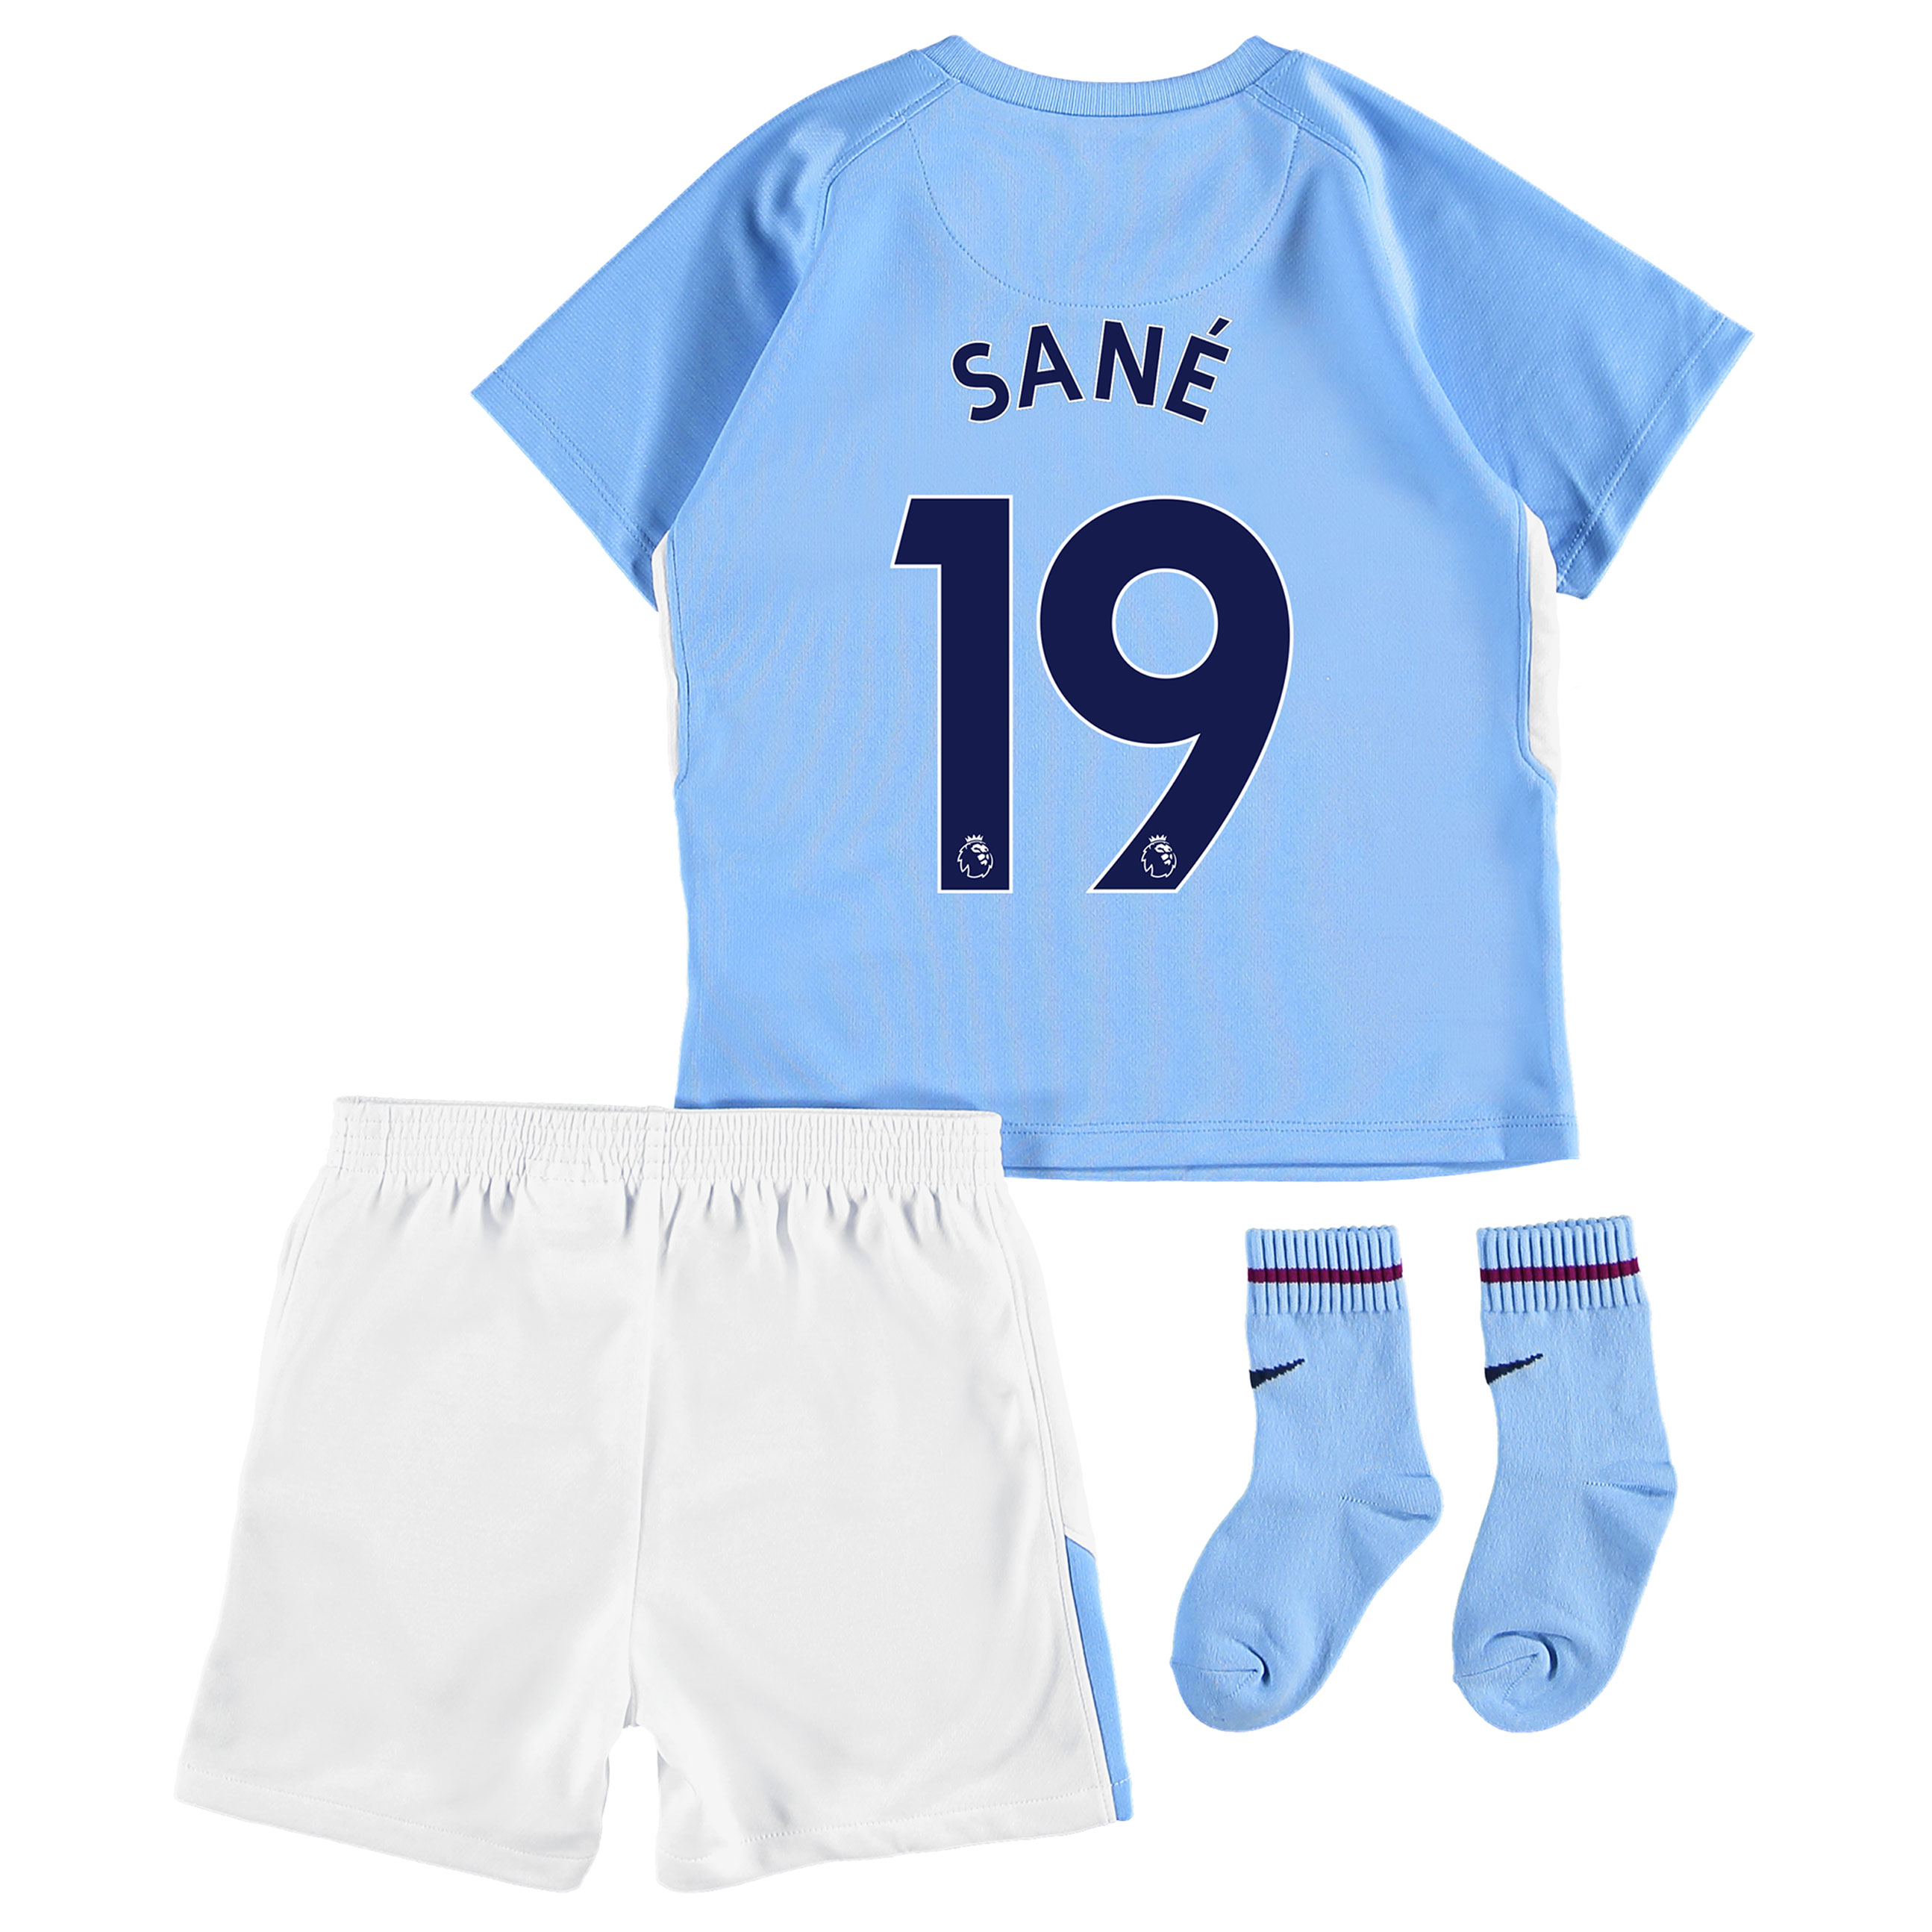 Manchester City Home Stadium Kit 2017-18 - Infants with San?® 19 printi